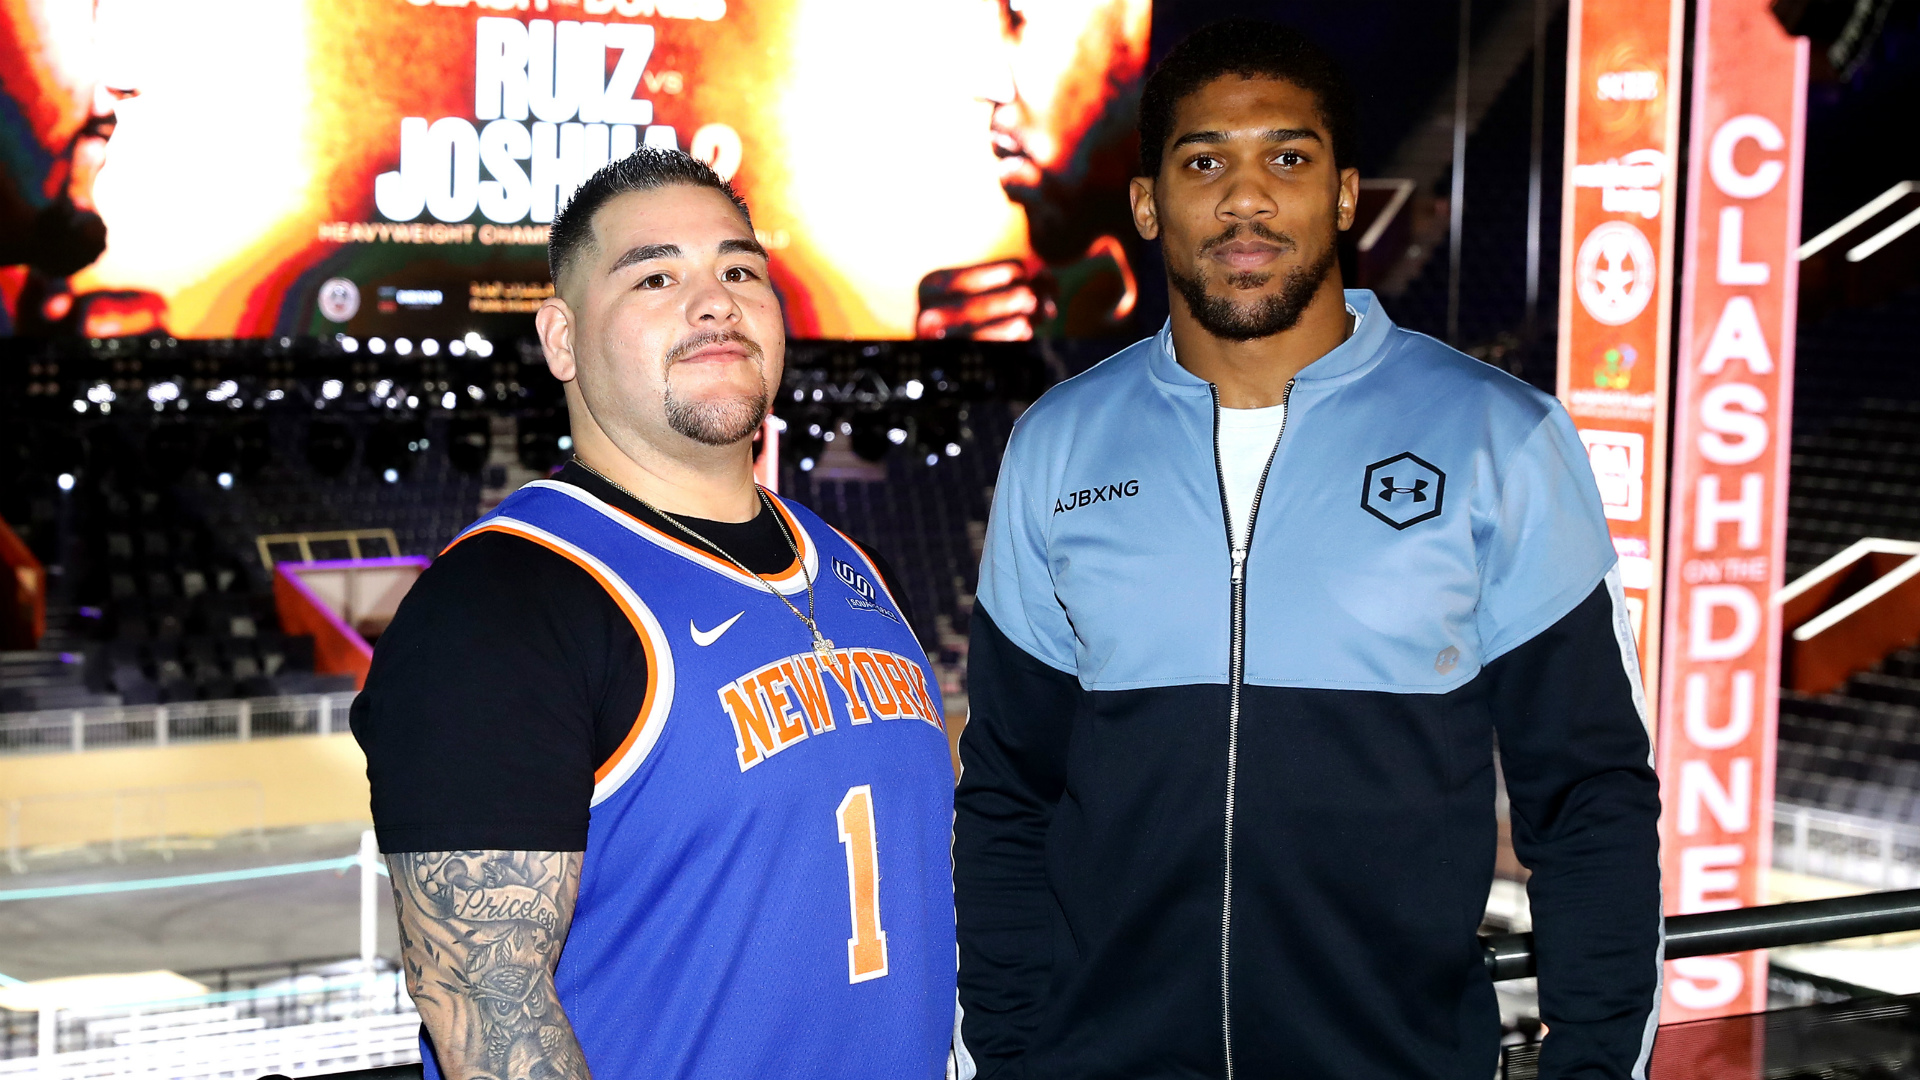 Ruiz v Joshua II: AJ set to weigh under 17 stone after camp inspired by Muhammad Ali